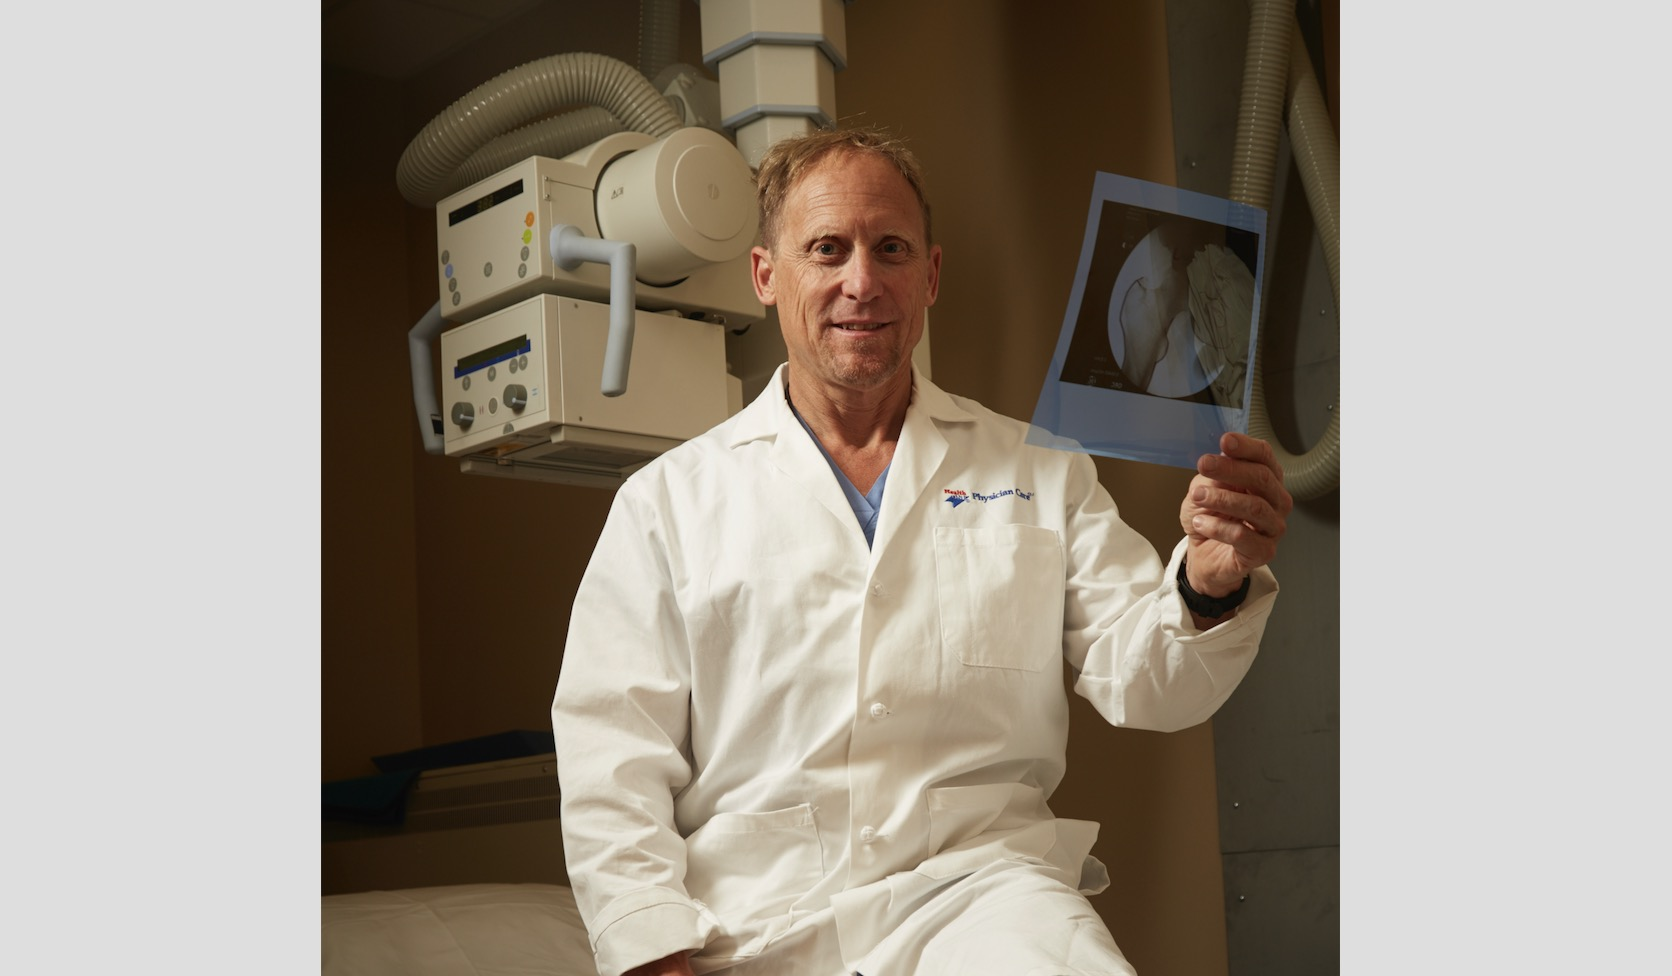 ade Smith, MD Board-certified orthopedic trauma surgeon with Swedish Medical Center Orthopedic Trauma and Limb Reconstruction